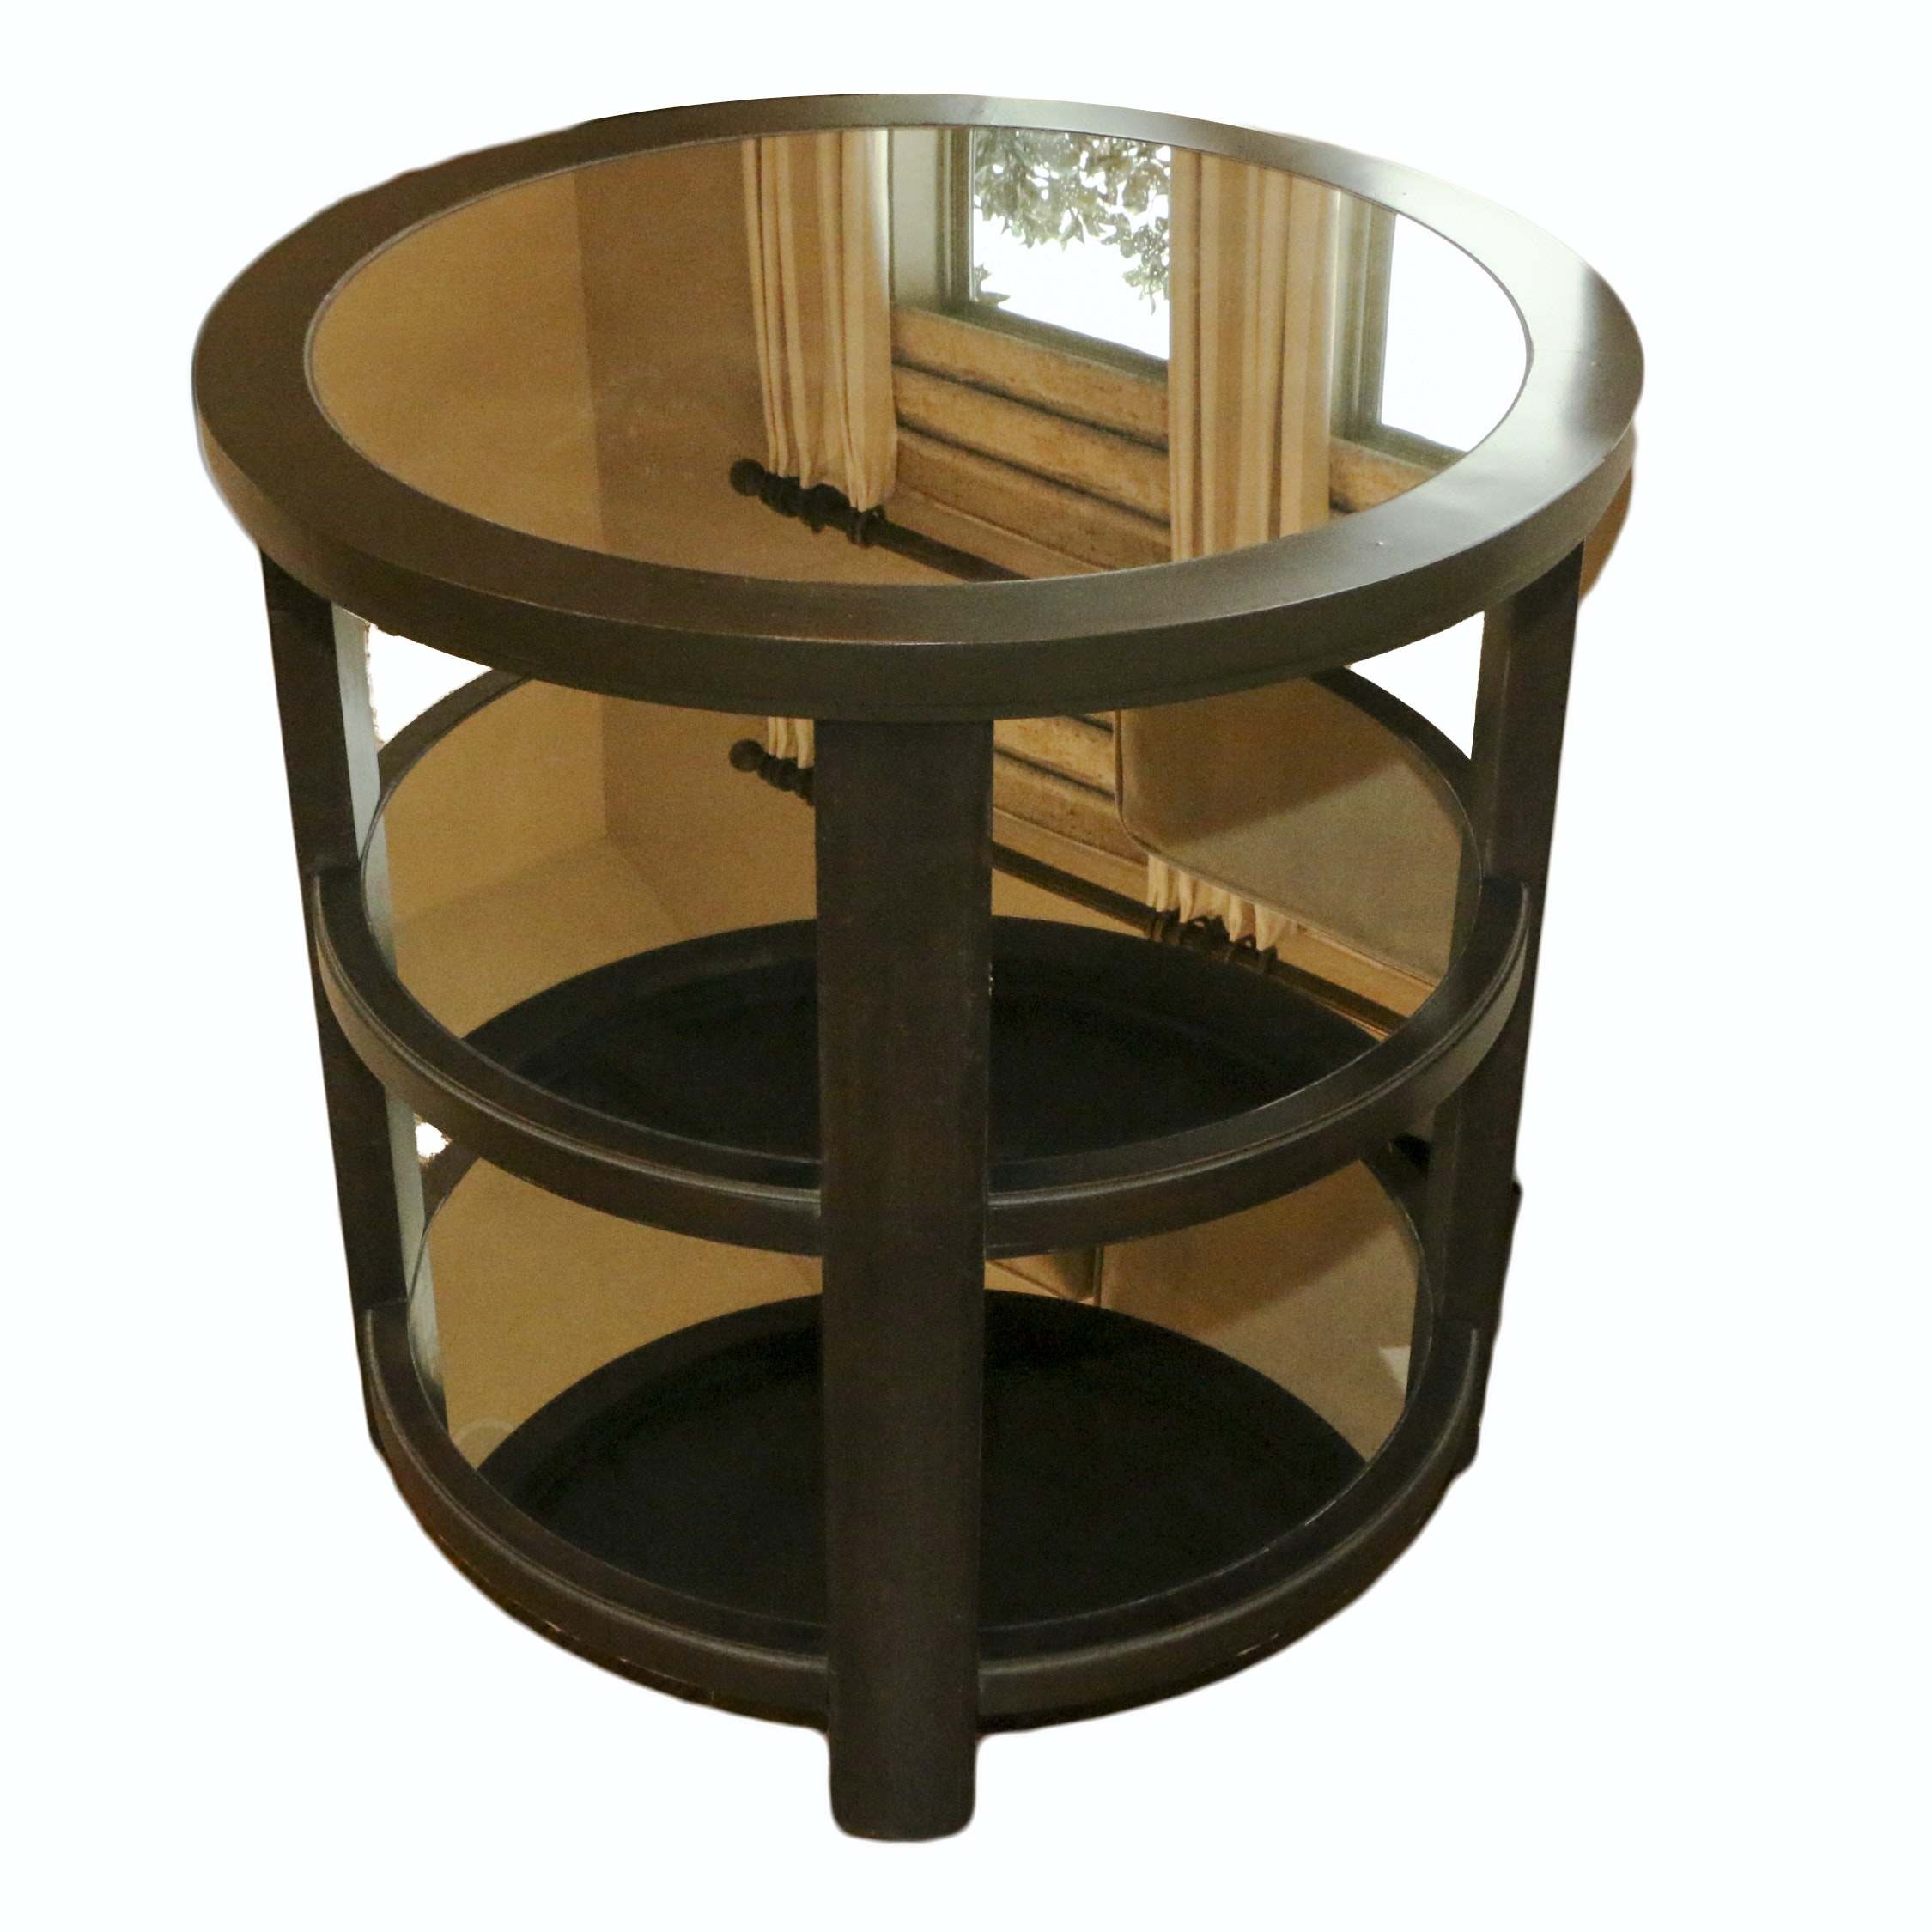 Three-Tier Mirrored Panel Side Table by Uttermost, 21st Century